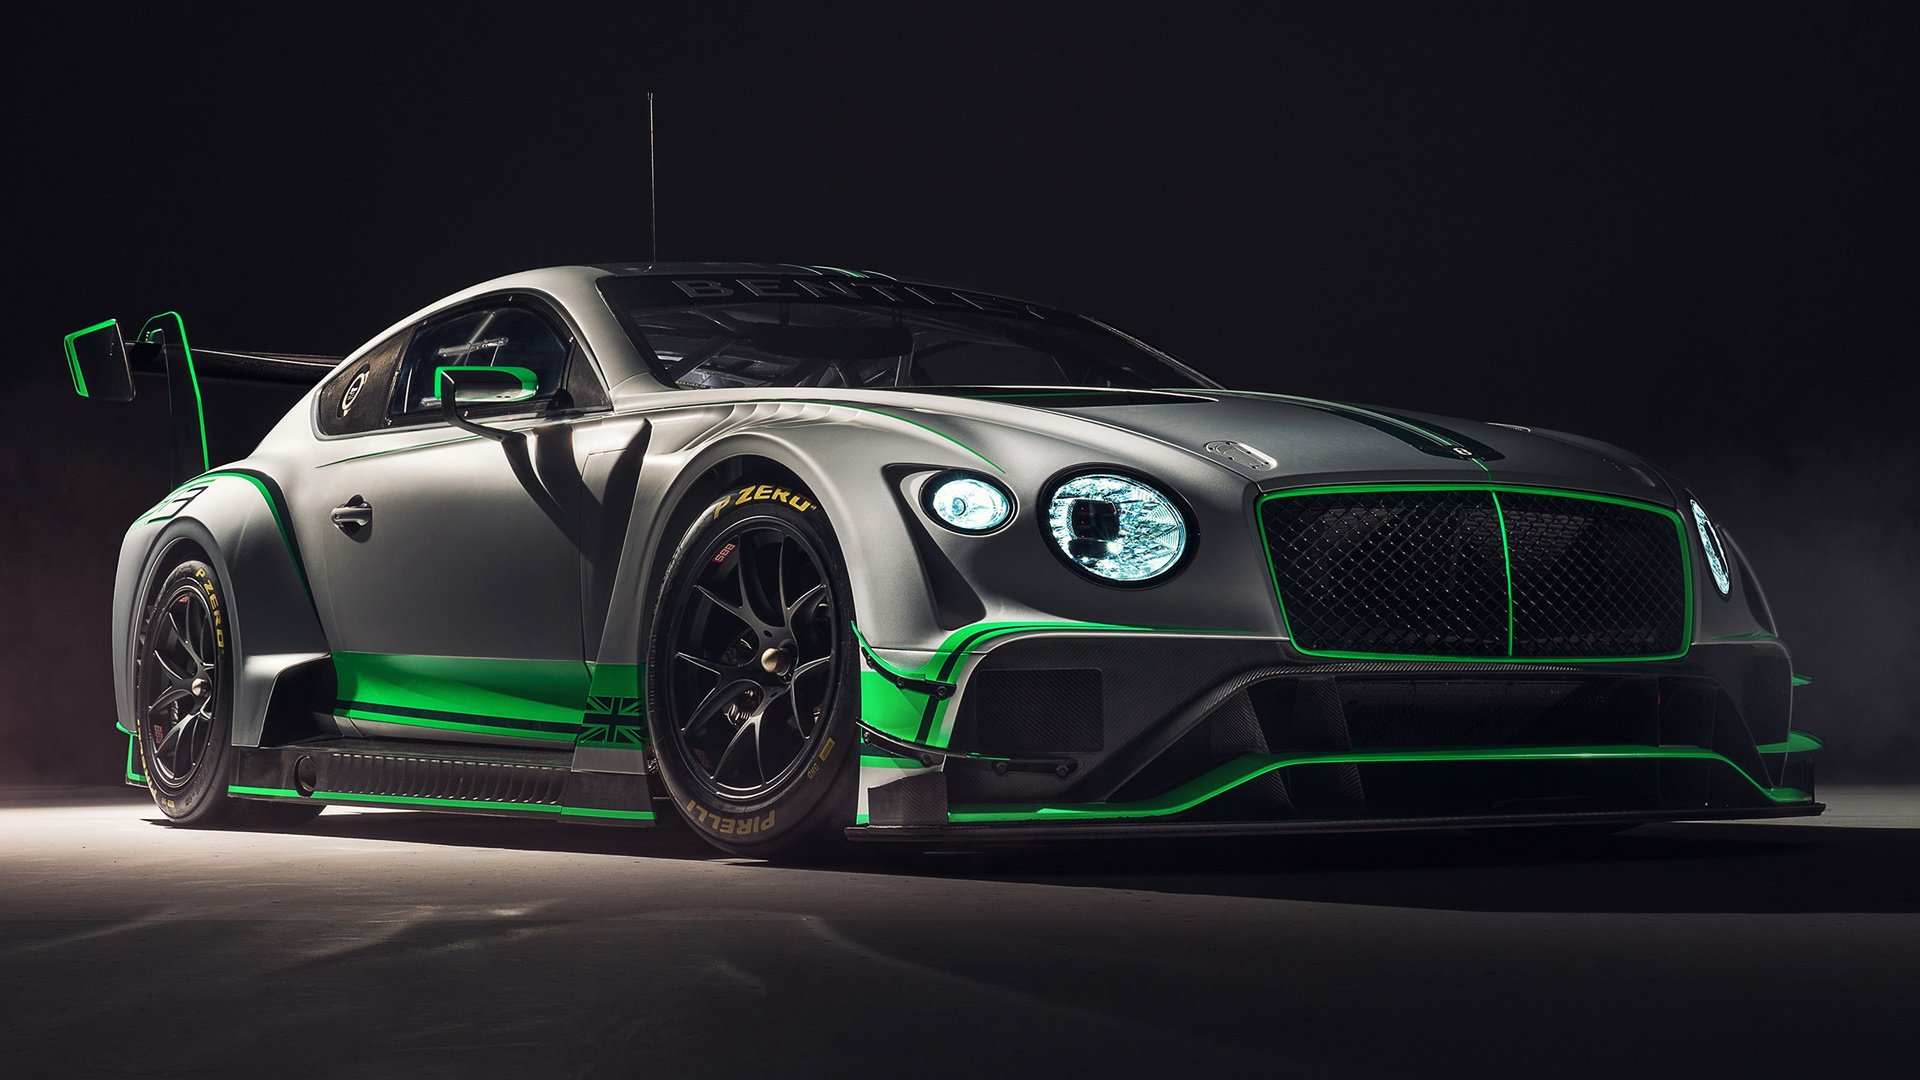 Vehicles - Bentley Continental GT3  Sport Car Race Car Silver Car Wallpaper